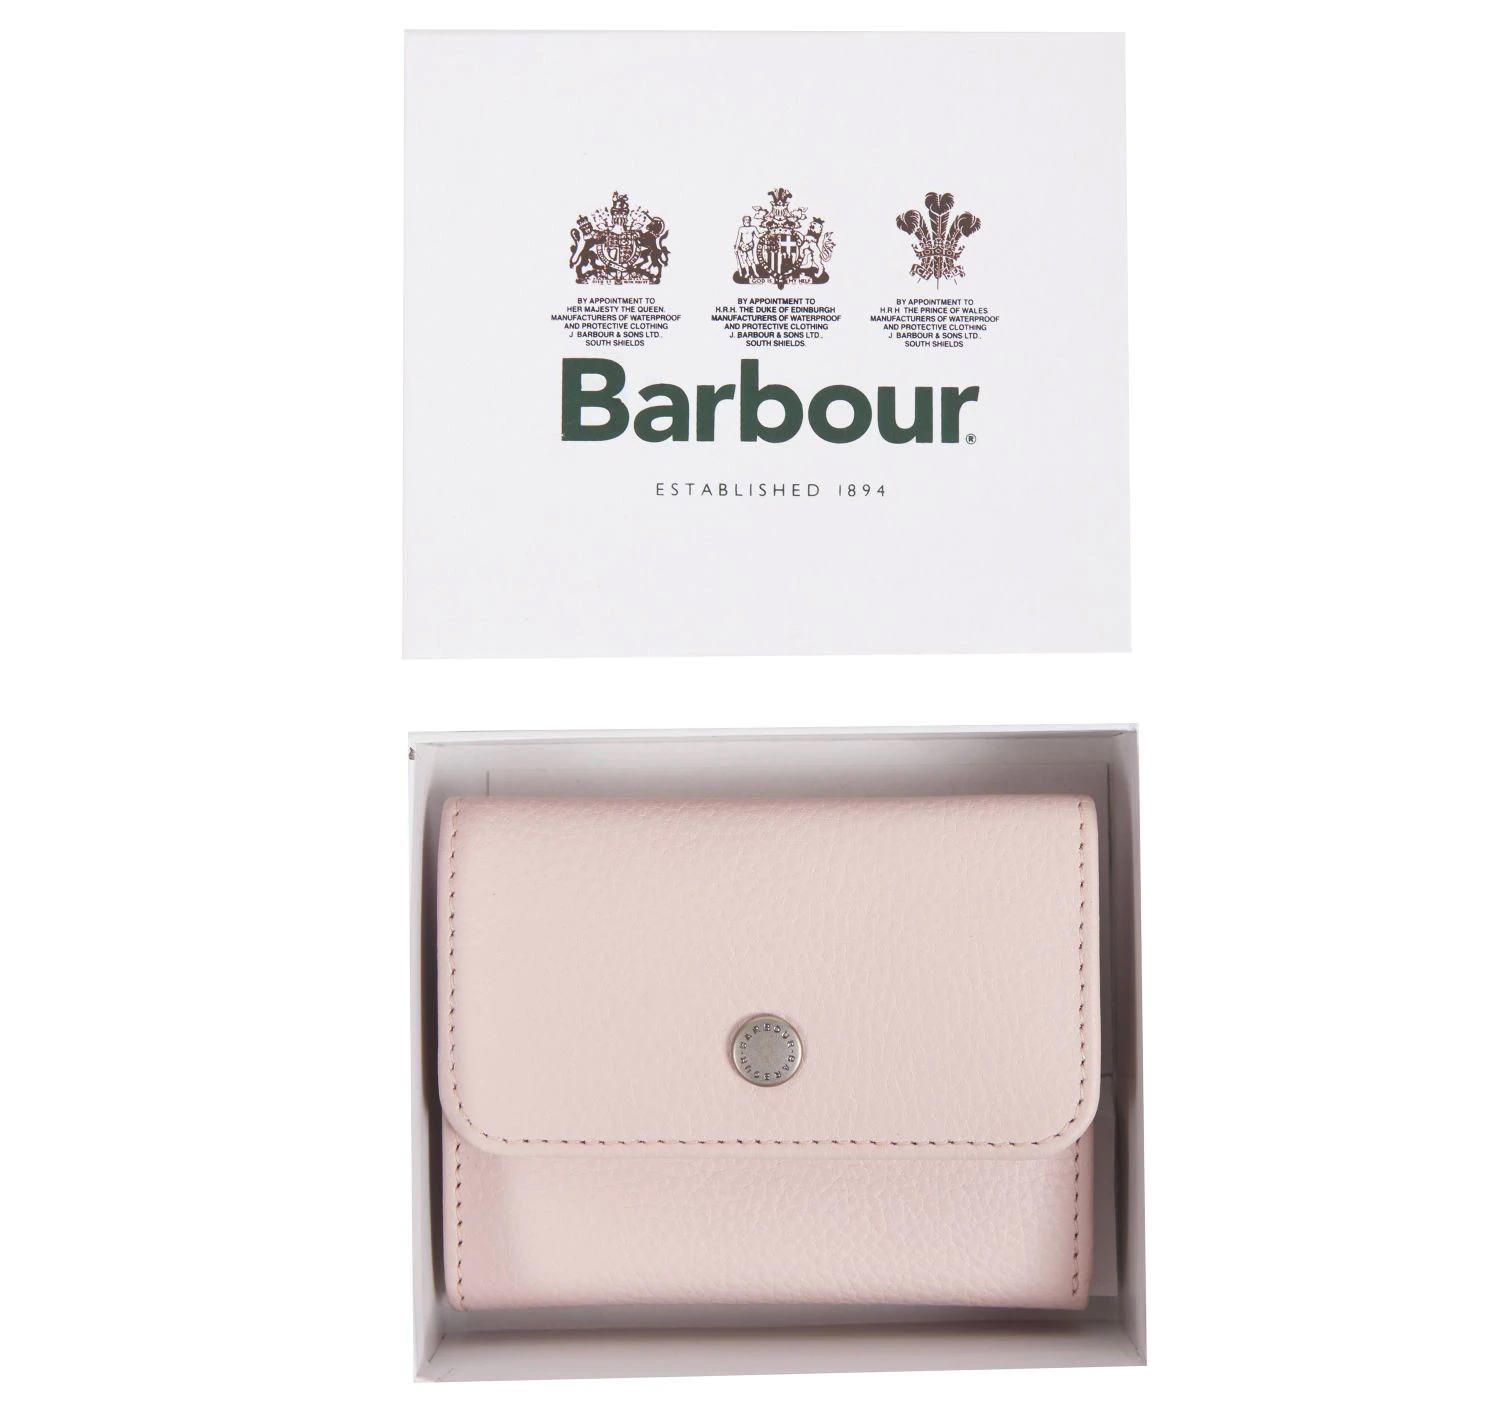 Barbour Barbour Leather Billfold Purse Pink